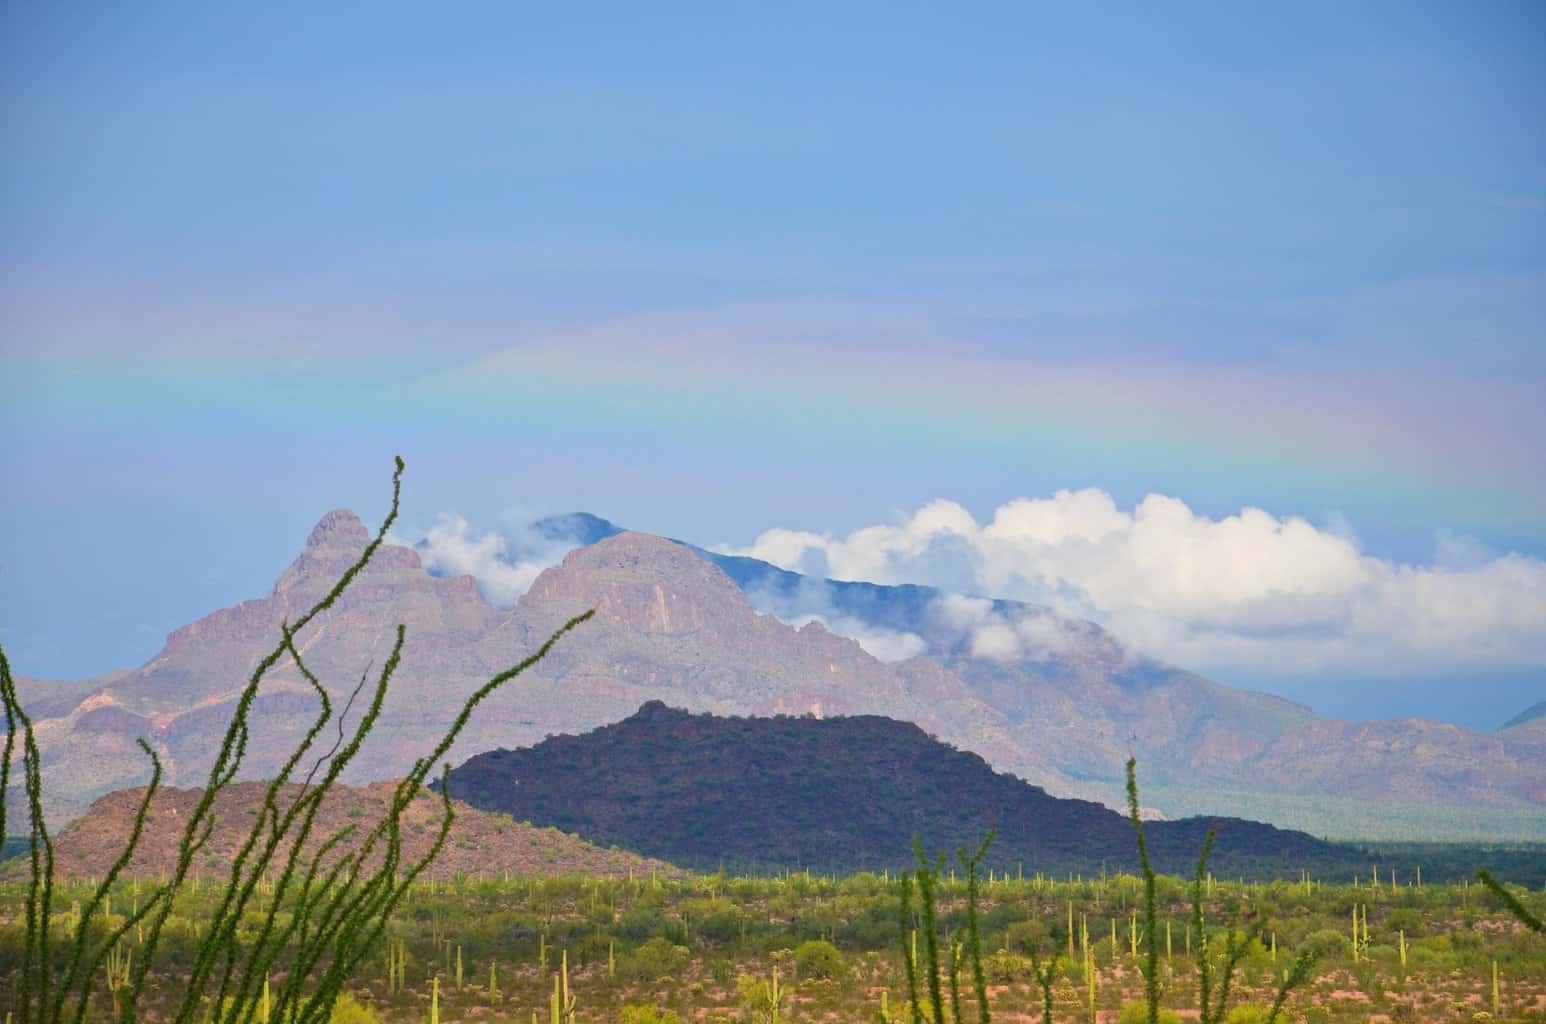 A flat rainbow over the Deablo Mts. AZ. My jaw dropped when i turned to see this ! Couldn't get my camera on it fast enough after i picked up my jaw !